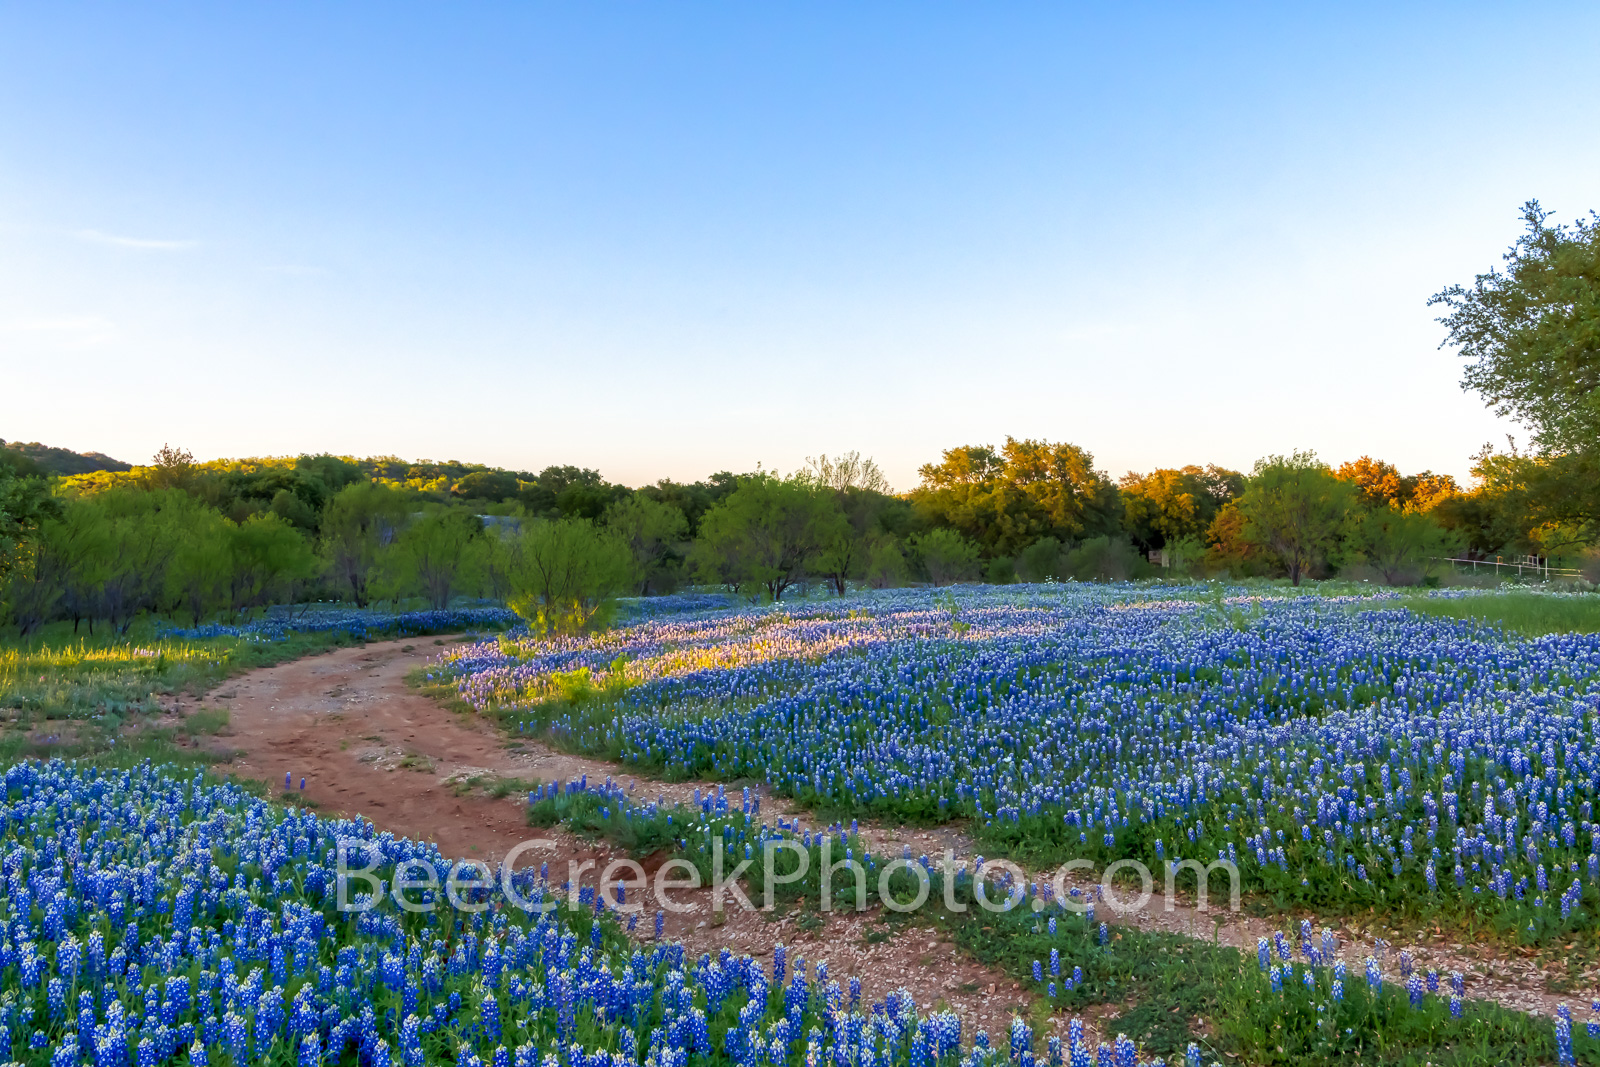 bluebonnets, indian paintbrush, wildflowers, texas hill country, texas, blue bonnets,hill country, shadows, light, road, mesquite, green, blue, llano, sun, shadows, light, trees, curved road, images o, photo